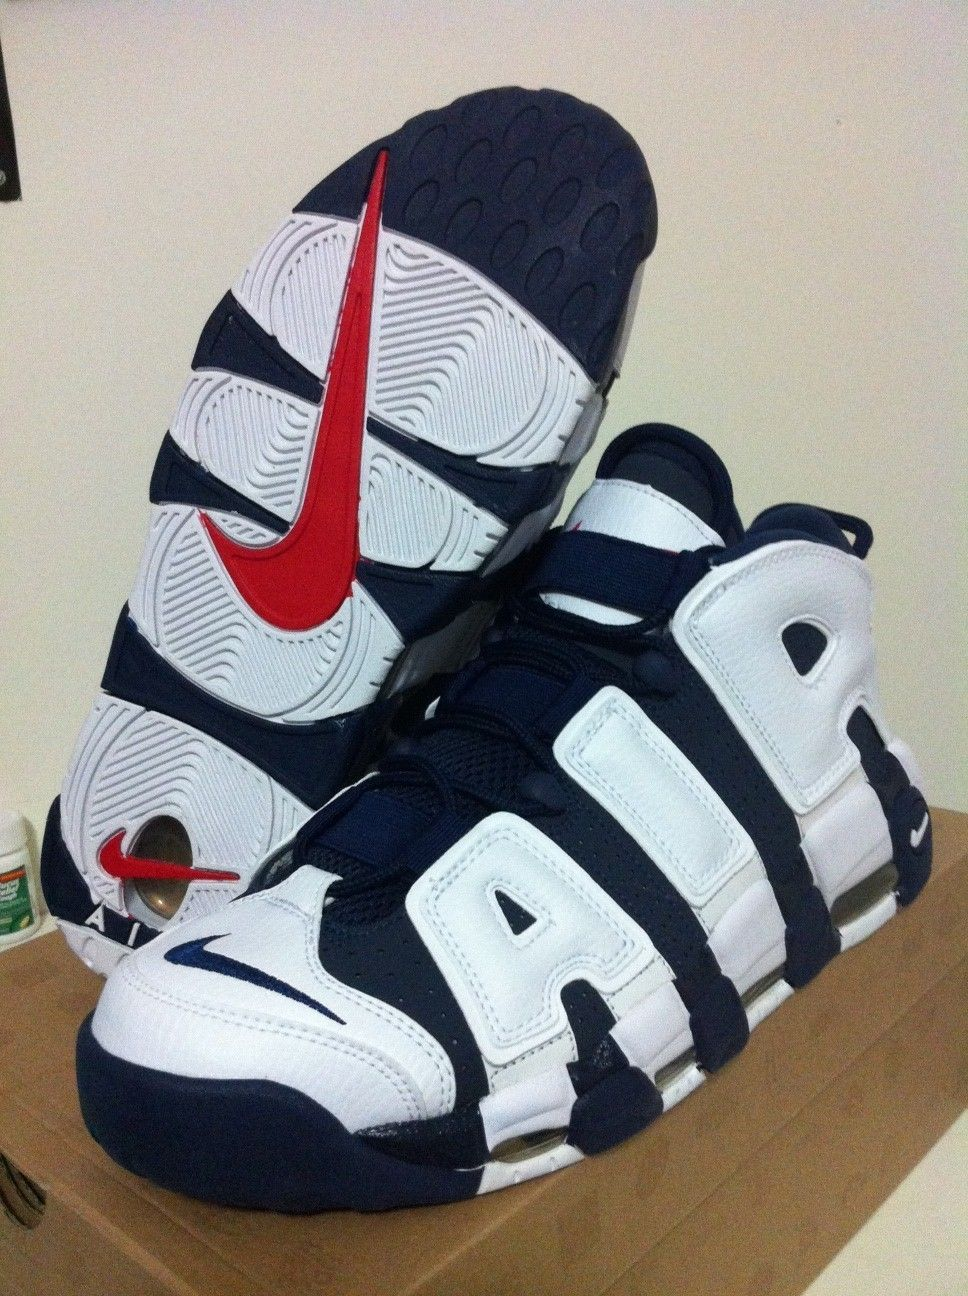 DS Nike Air More Uptempo Olympic Pippen Retro 8.5 Max Team USA Foamposite  KD #SNEAKERS